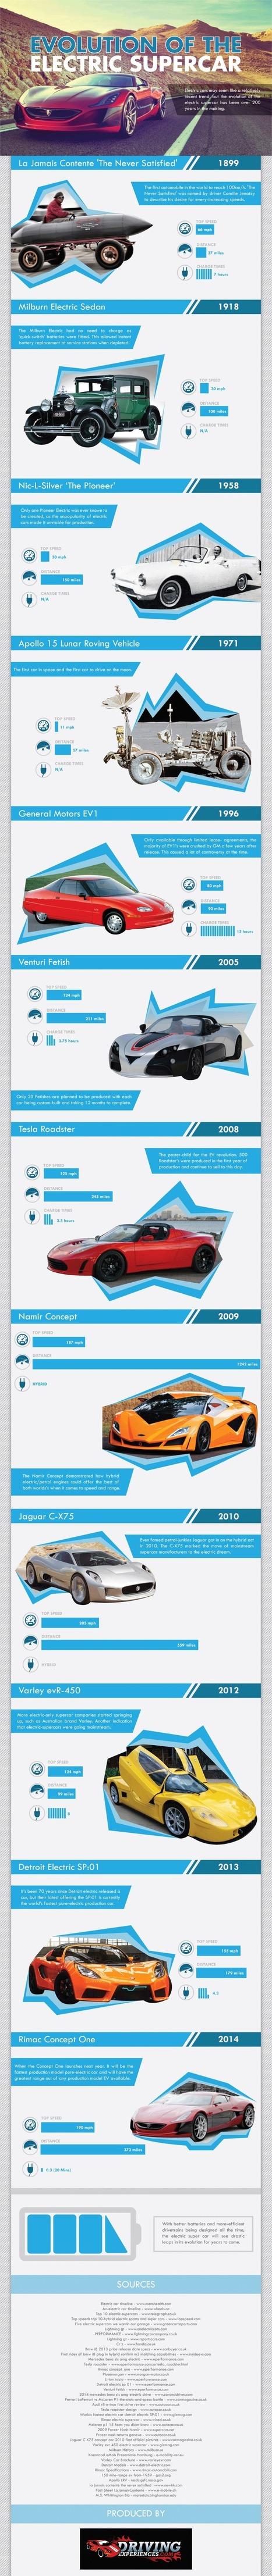 The Evolution of the Electric Supercar - Business 2 Community | Luxury Cars | Scoop.it